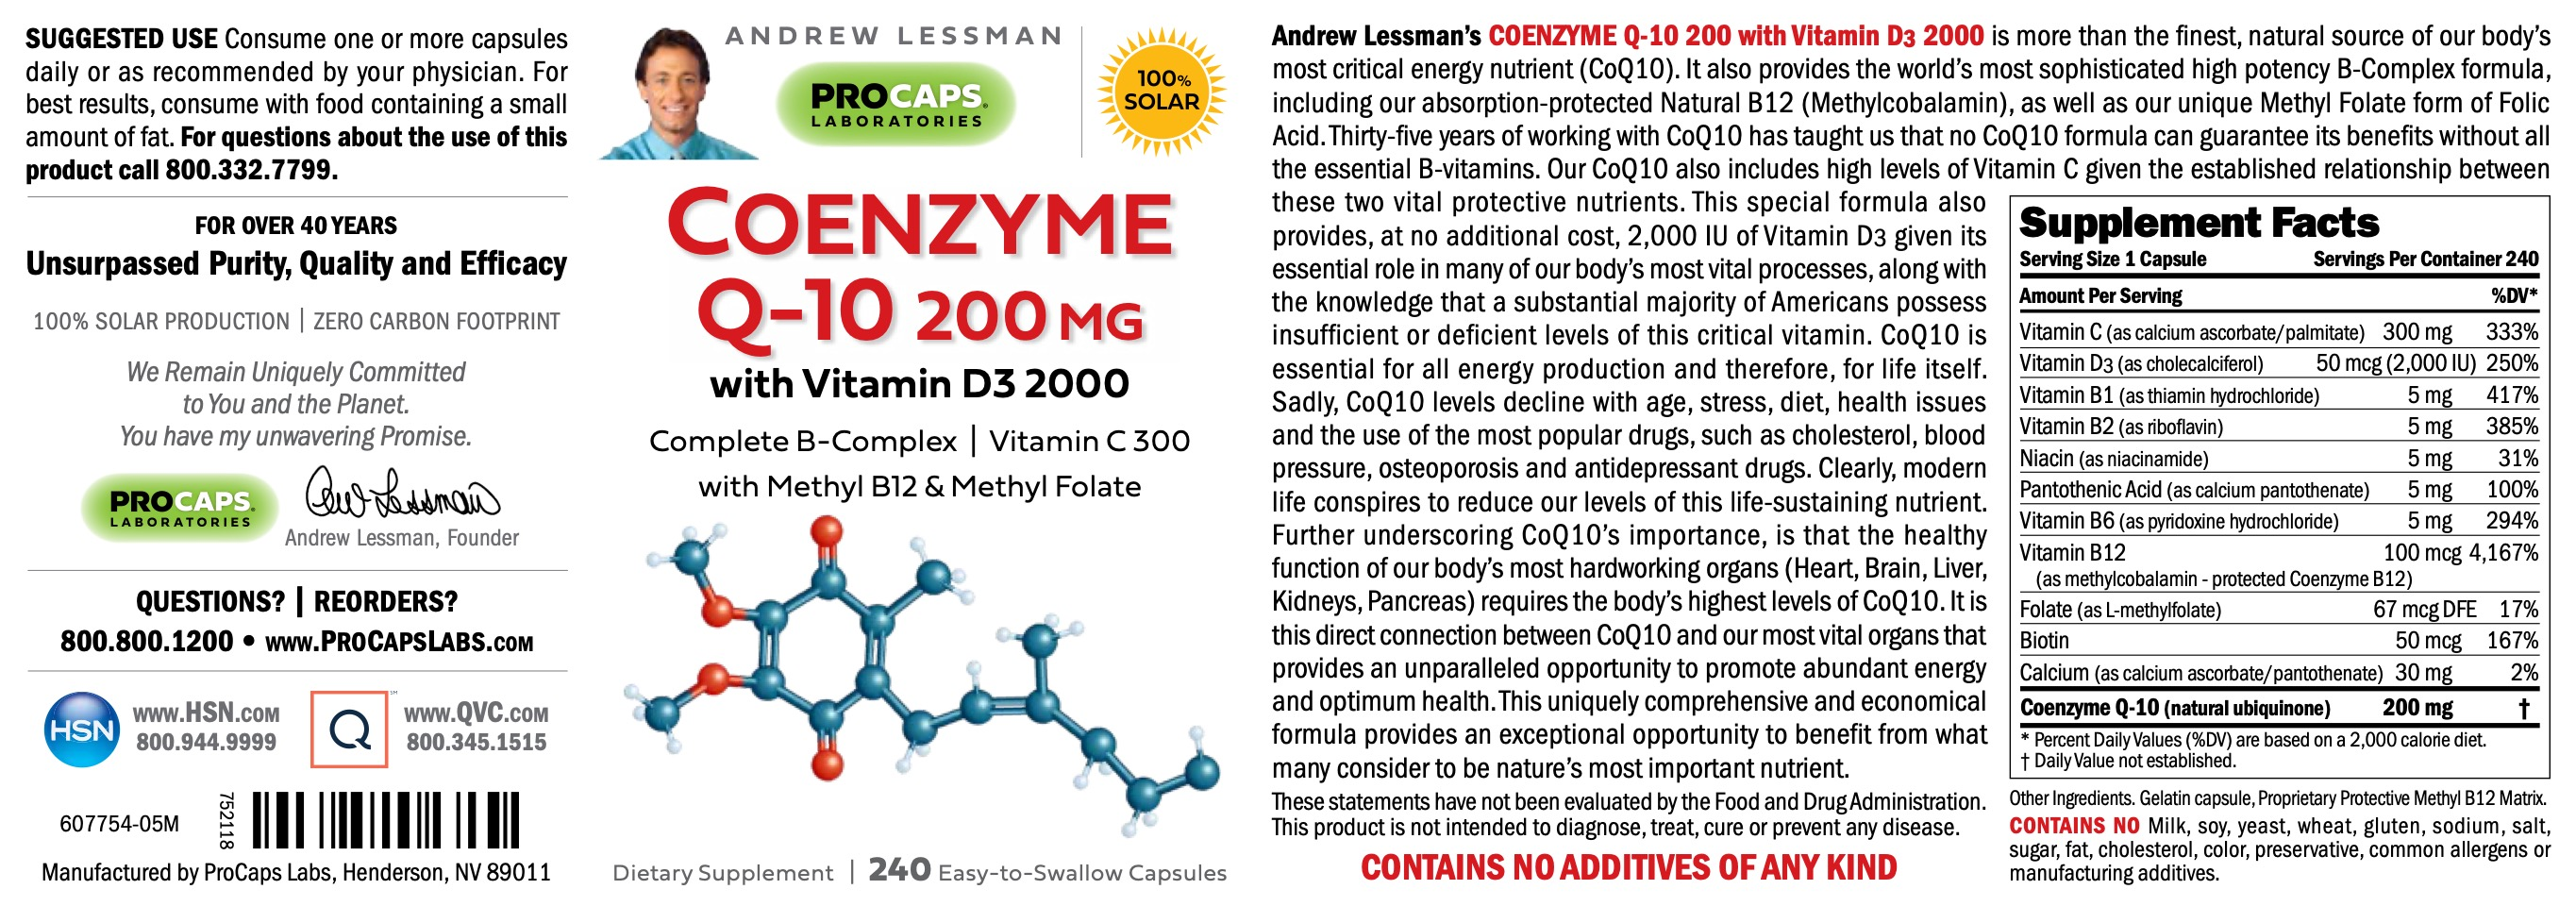 CoEnzyme-Q-10-200-mg-with-Vitamin-D3-2000-Capsules-Anti-oxidants